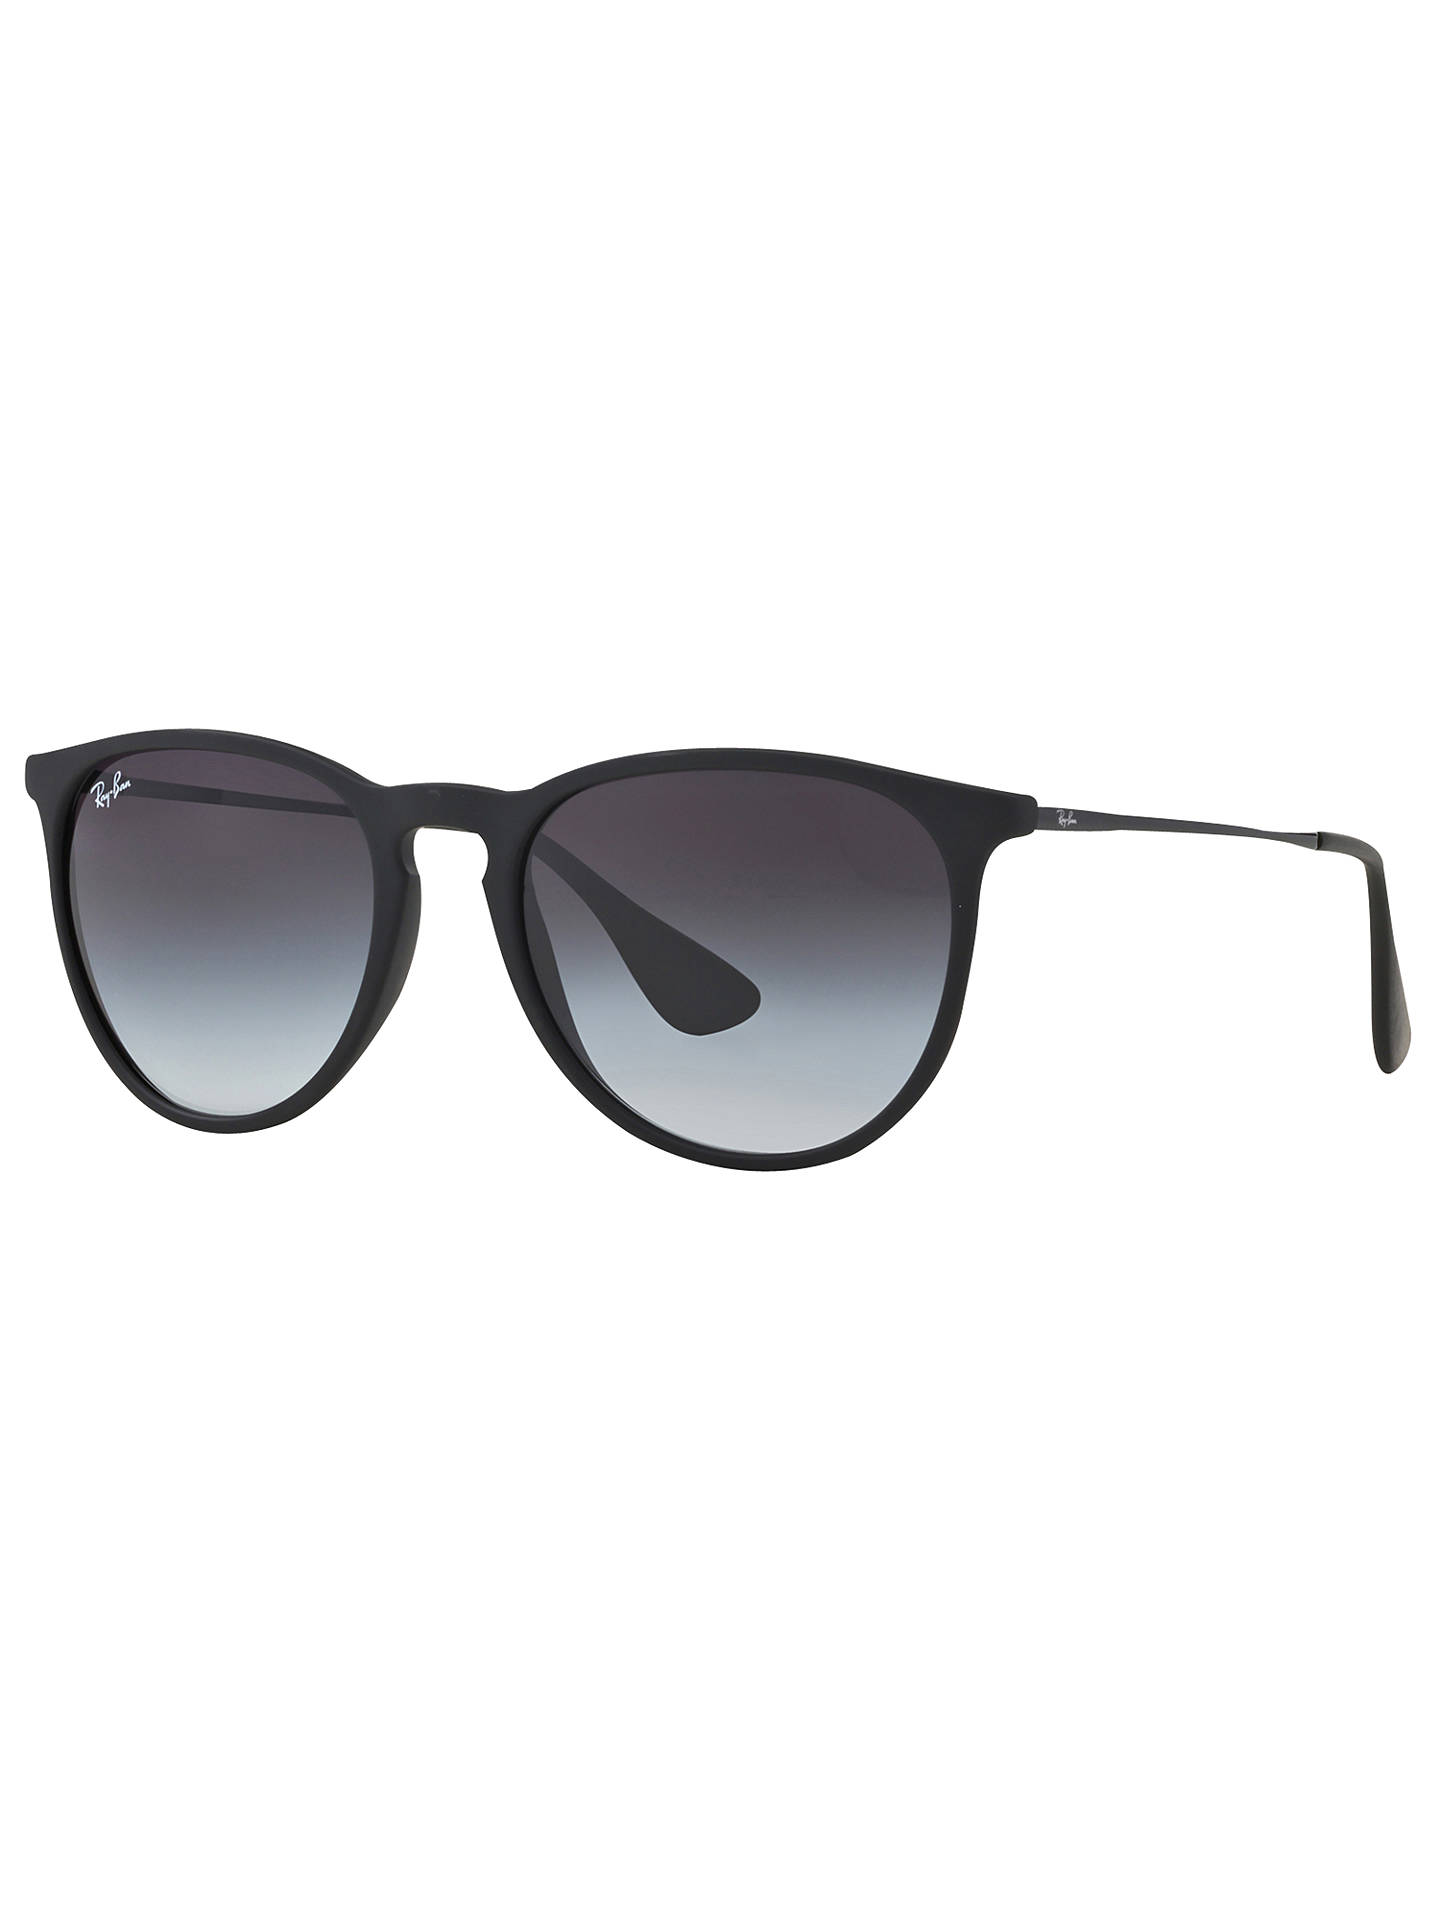 e937f46619 Ray-Ban RB4171 Erika Sunglasses at John Lewis   Partners